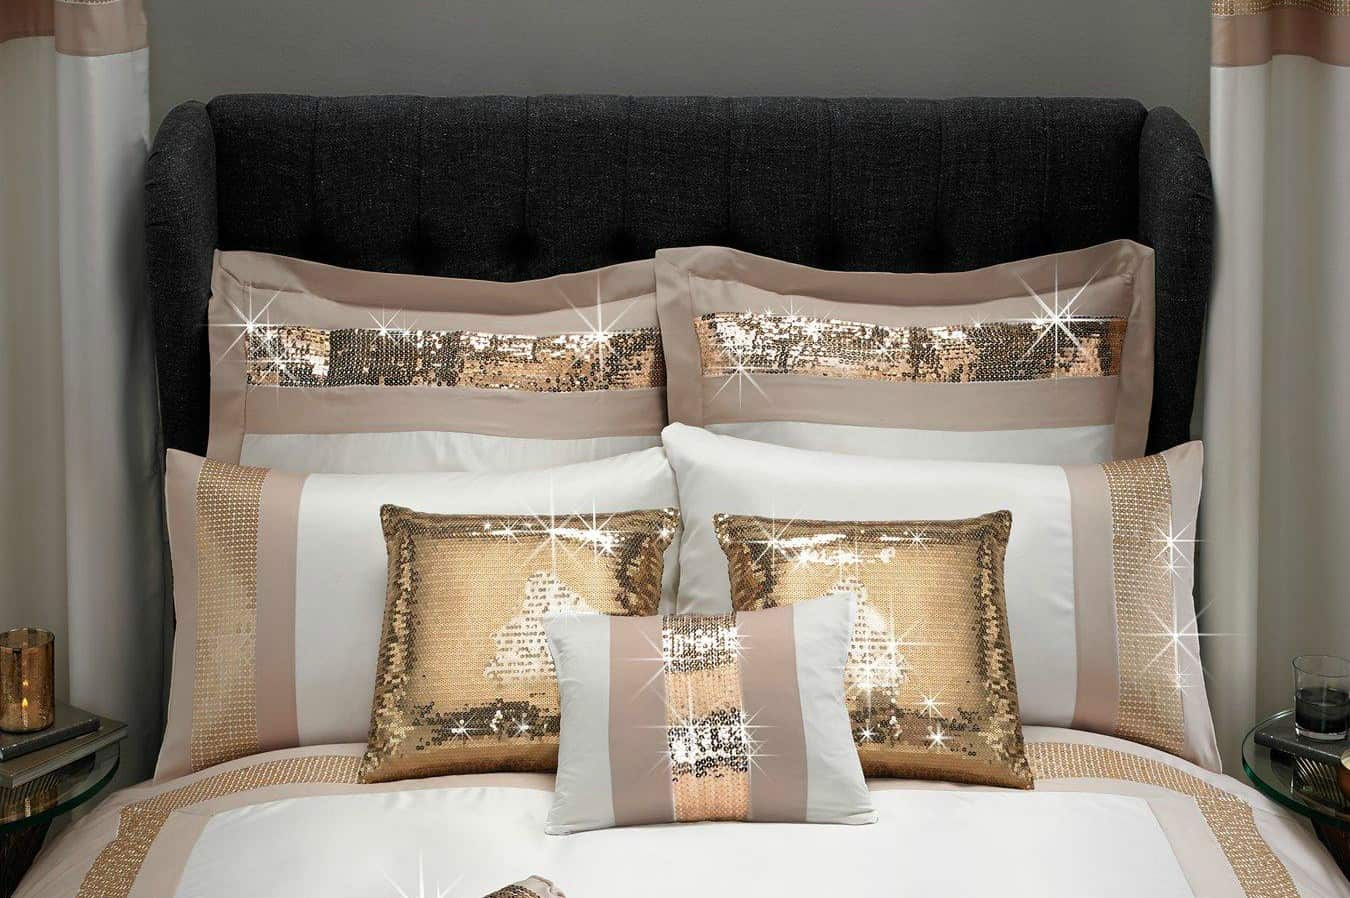 Adding the Midas touch to a bedroom